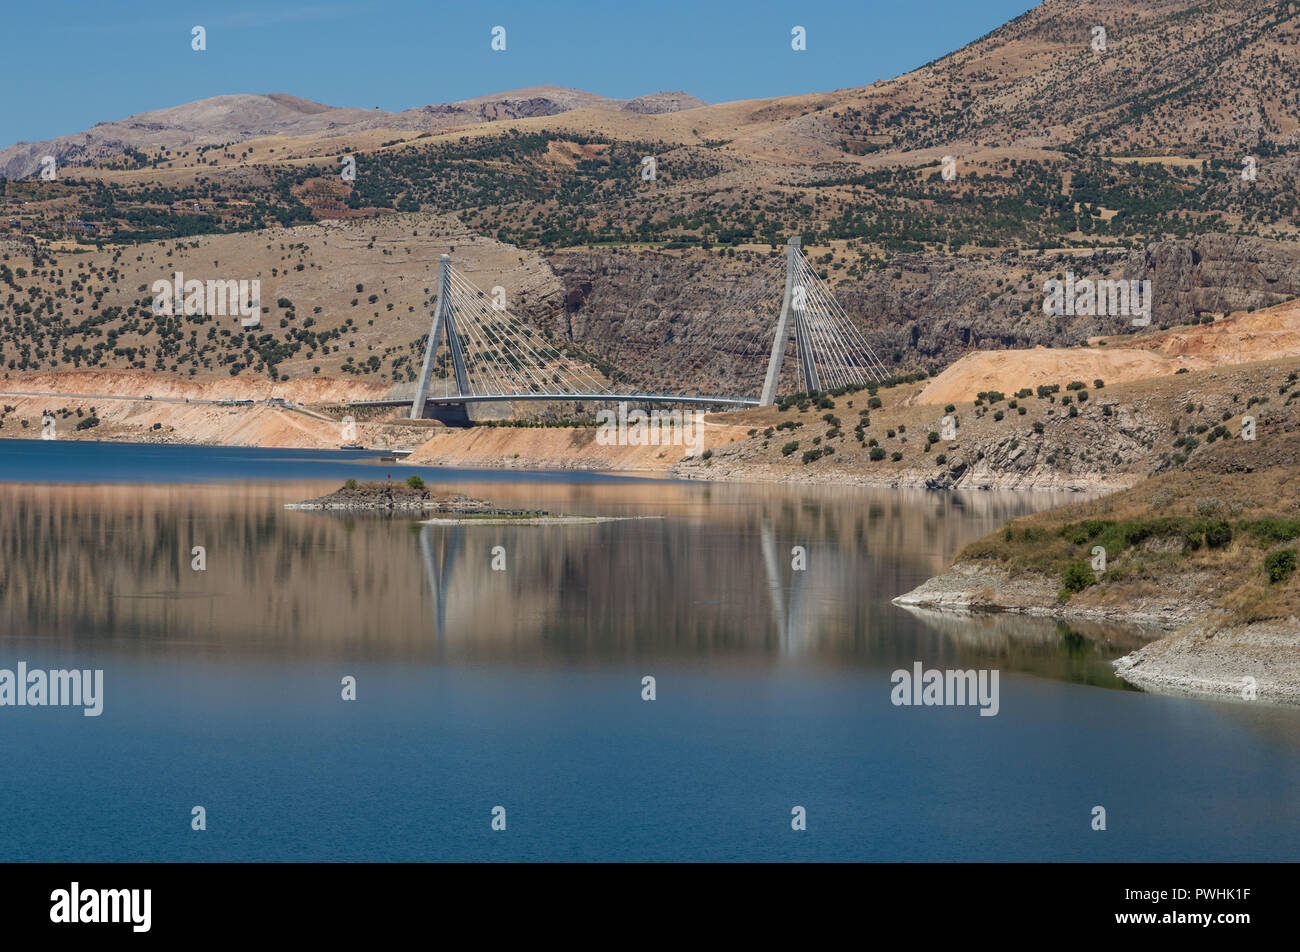 Built on the Euphrates River, the Nissibi Bridge is one of